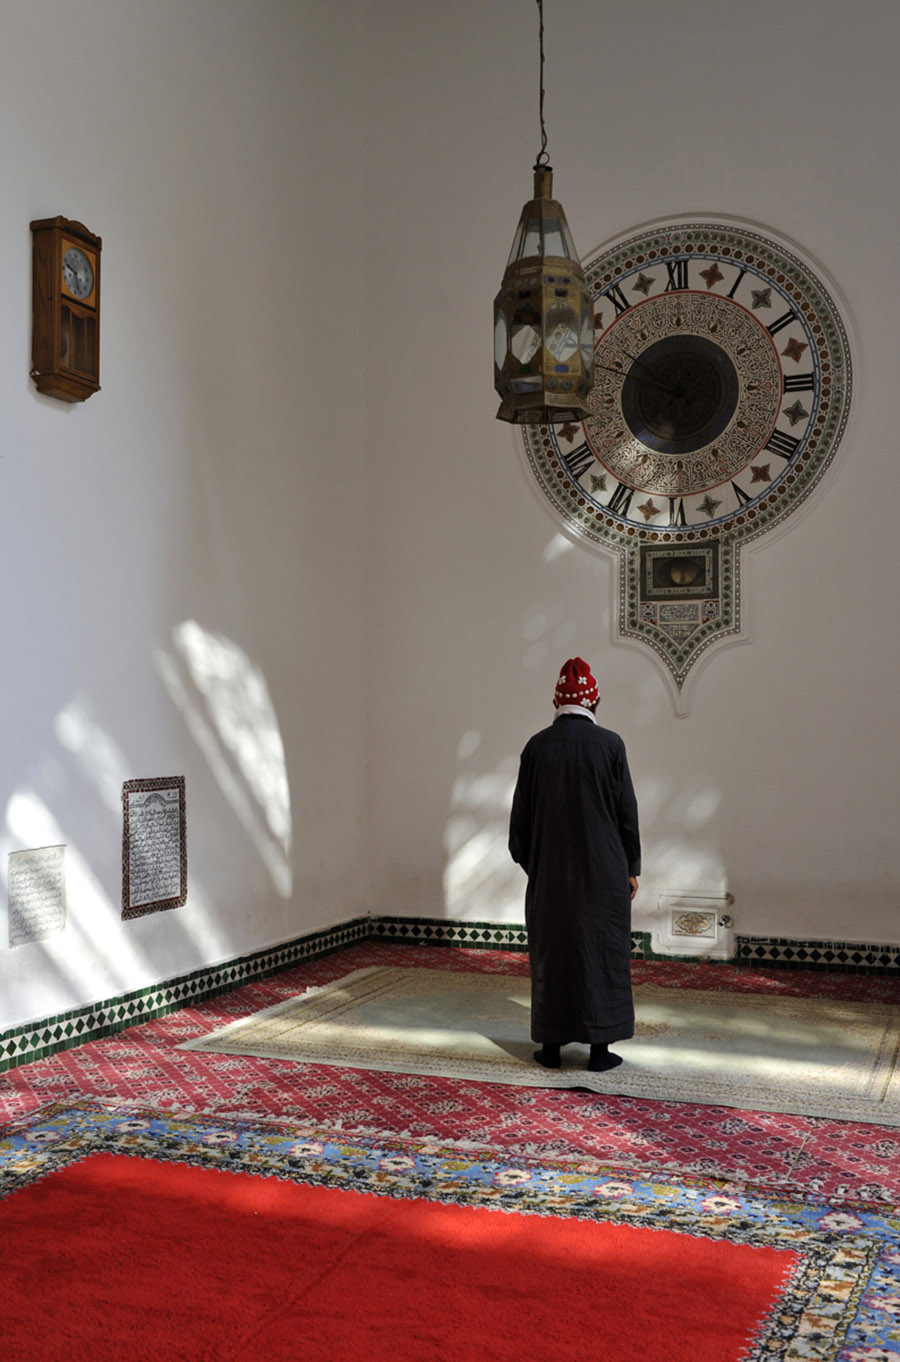 Visitor to the Zaouis Sidi Bel Abbes, Marrakech, 2011